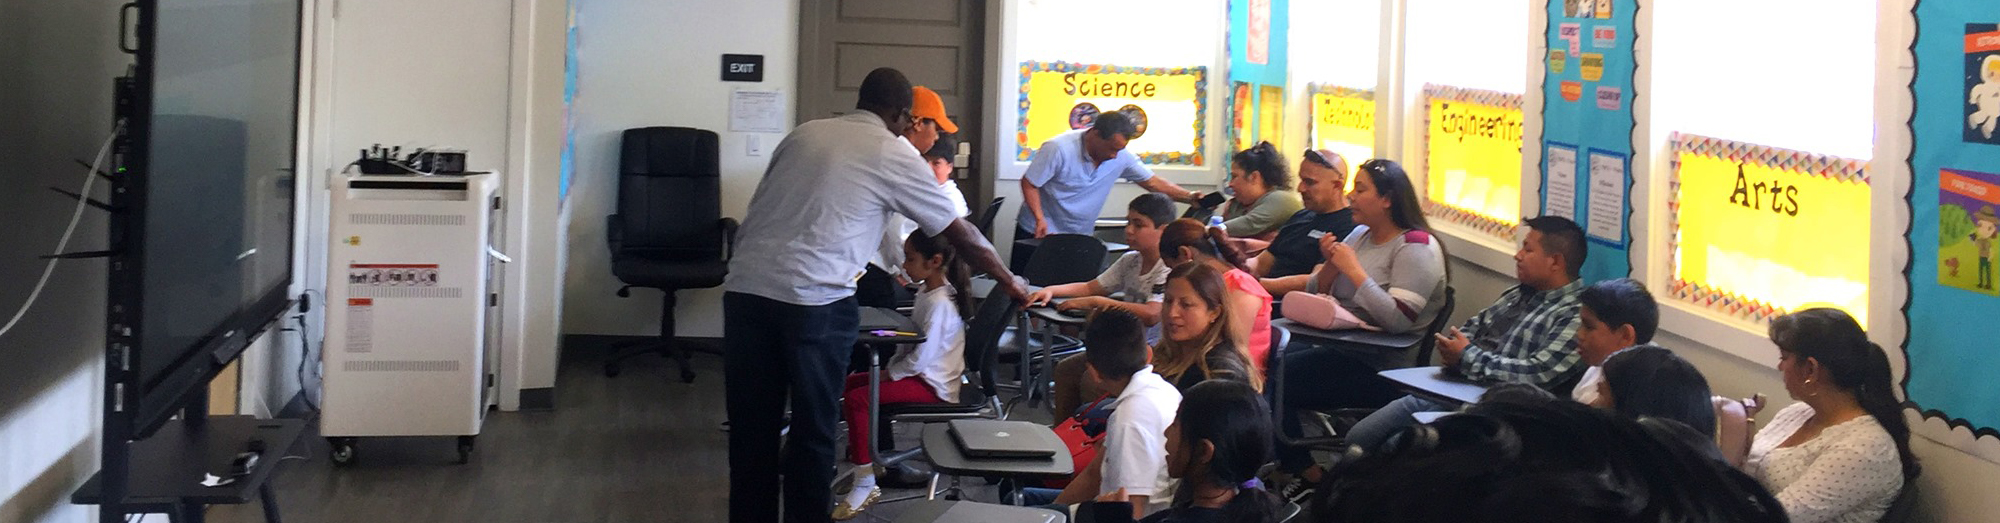 parents and students in a classroom